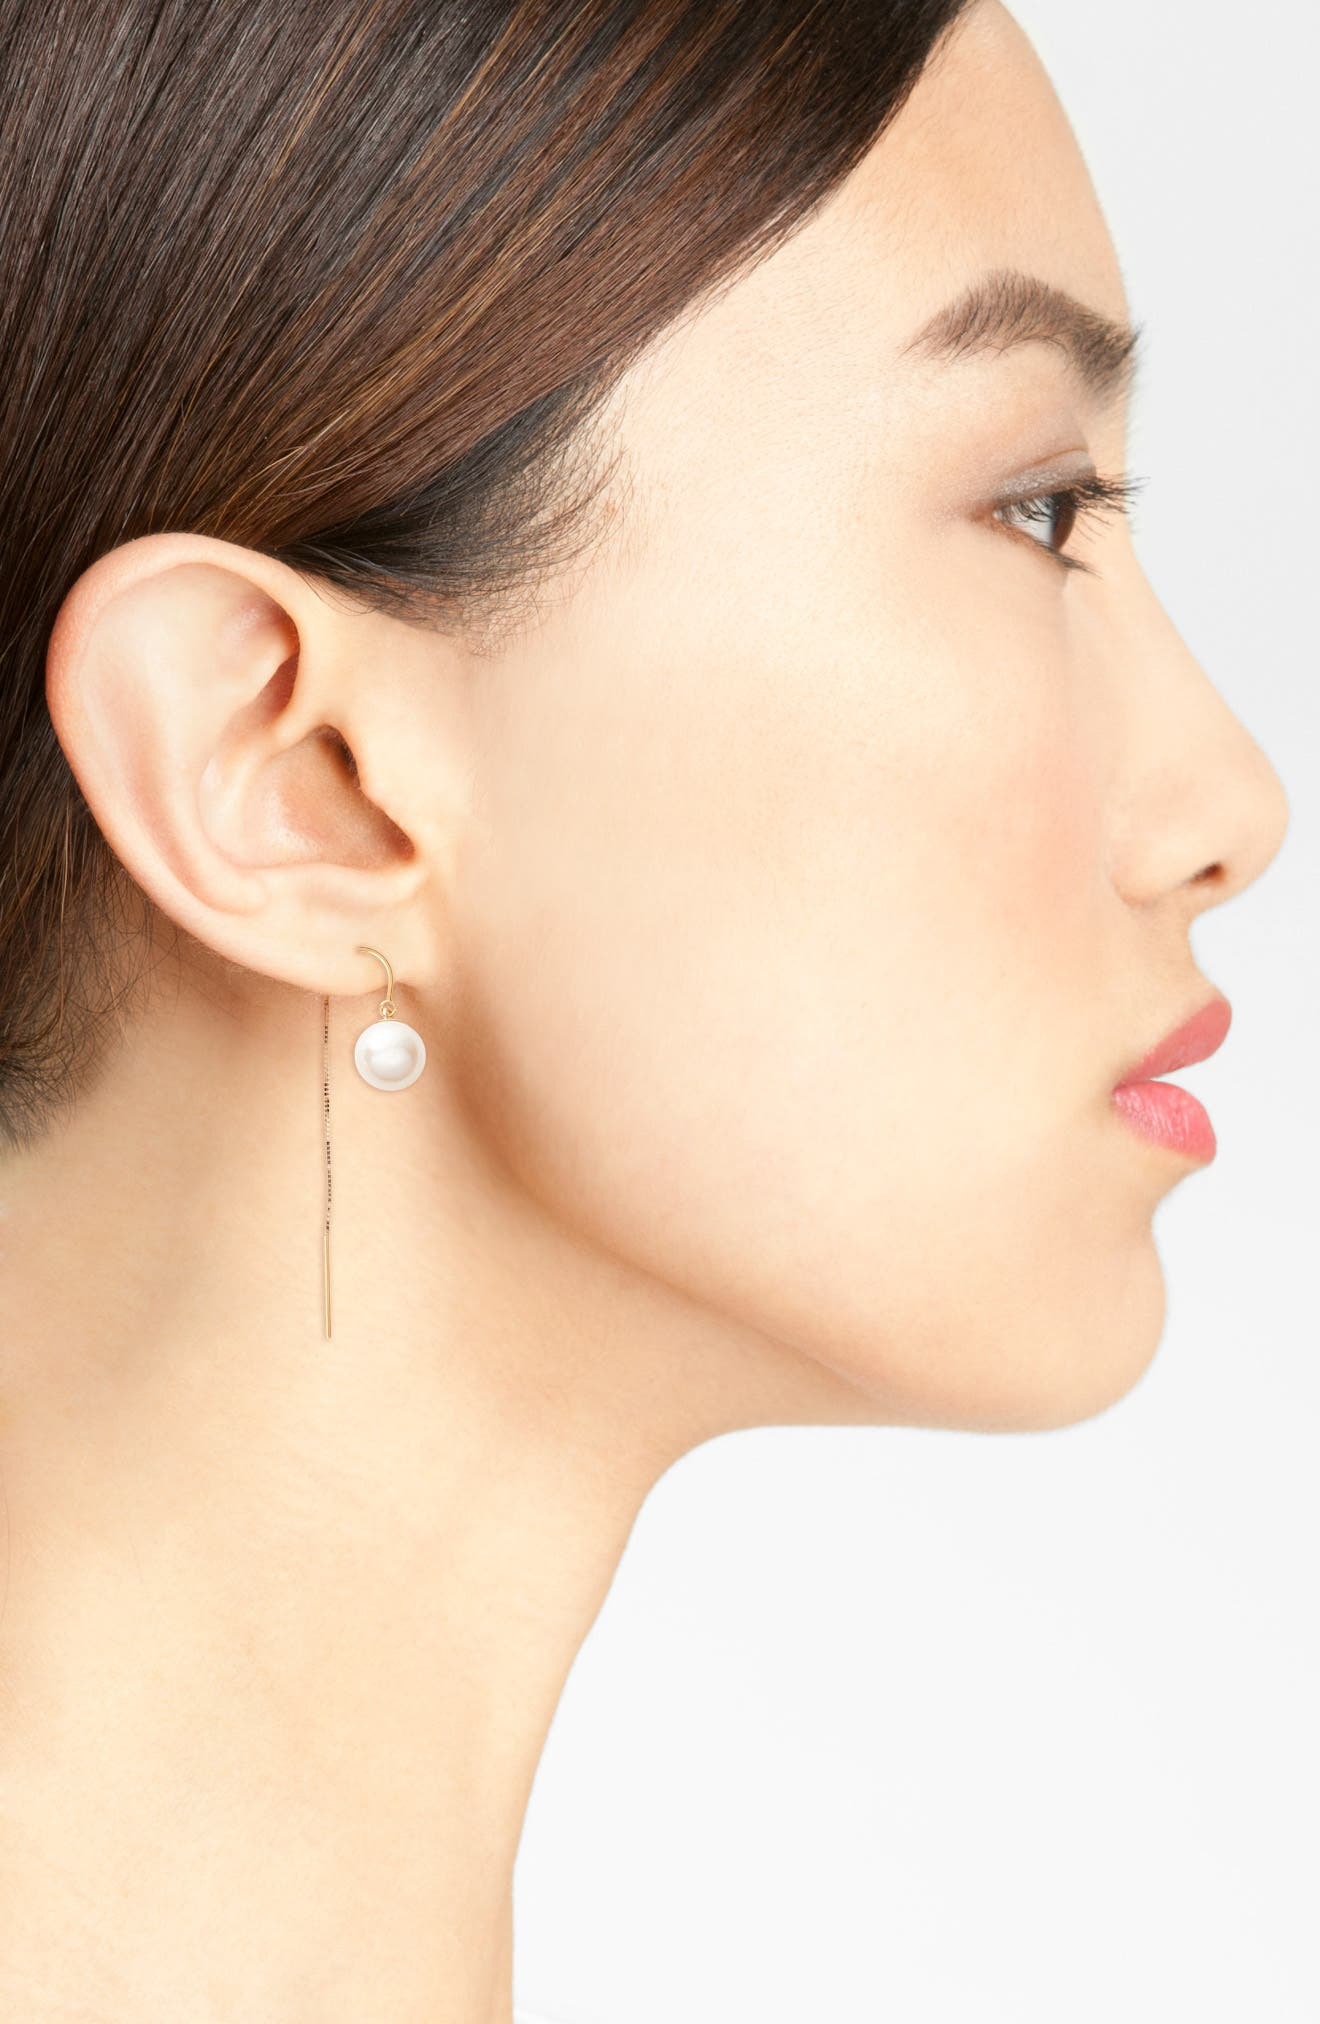 Pearl Threader Earrings,                             Alternate thumbnail 2, color,                             YELLOW GOLD/ WHITE PEARL